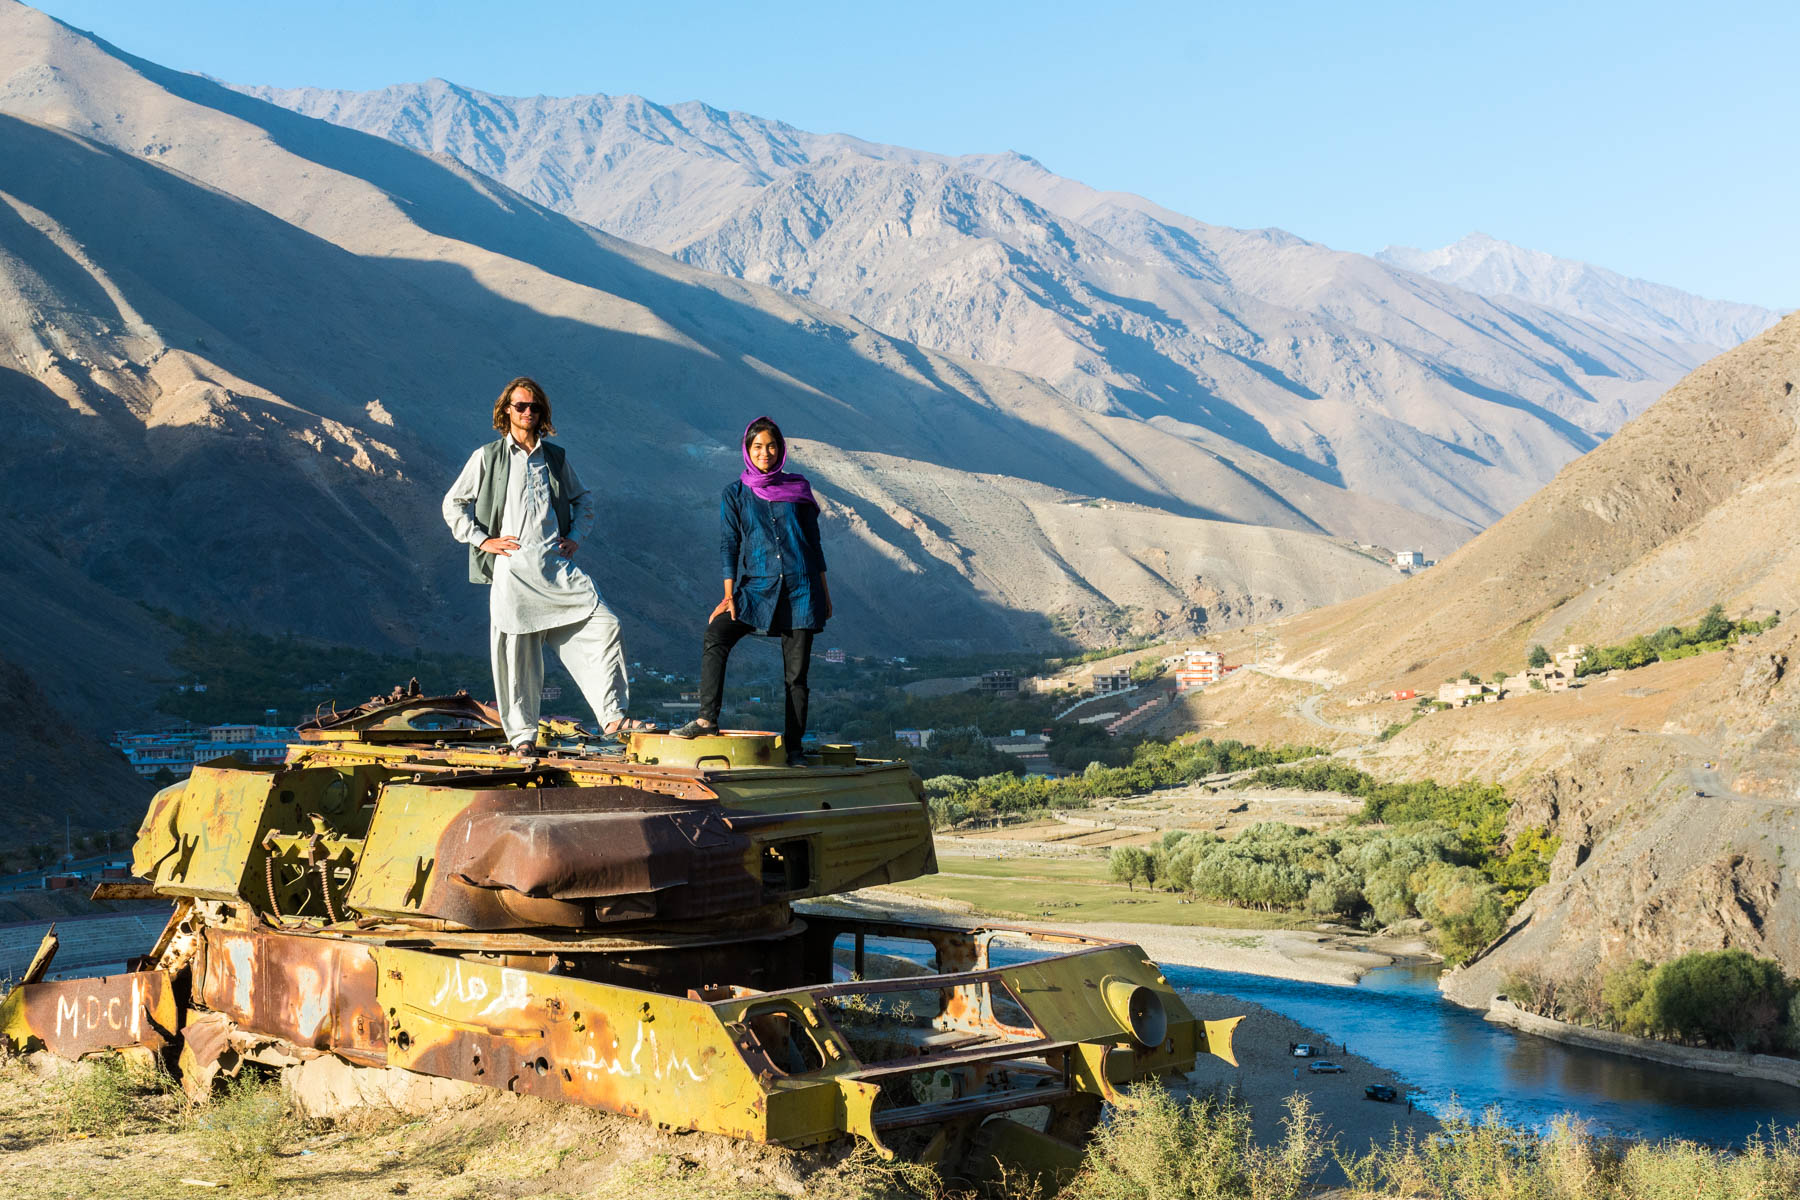 Lost With Purpose in the Panjshir Valley of Afghanistan